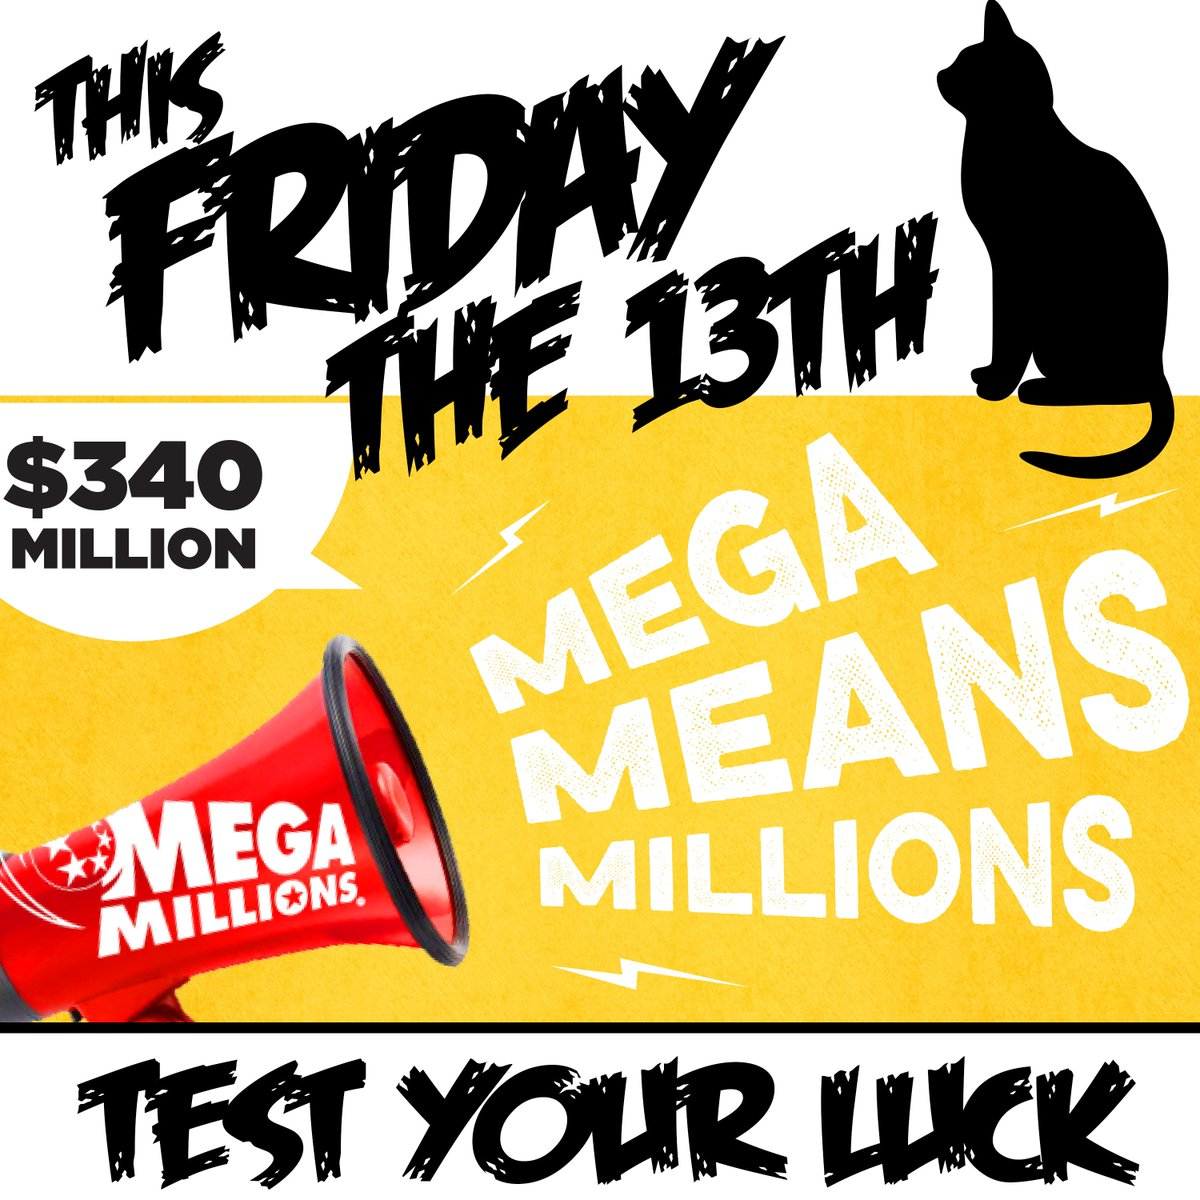 Tonight&#39;s Mega Millions draw is worth $340 million - the 10th largest jackpot in the game&#39;s history!  It&#39;s also Friday the 13th...SIX big jackpots have been won on Friday the 13th in the past. So, don&#39;t wait - grab a ticket today! <br>http://pic.twitter.com/6rGelcjgLs